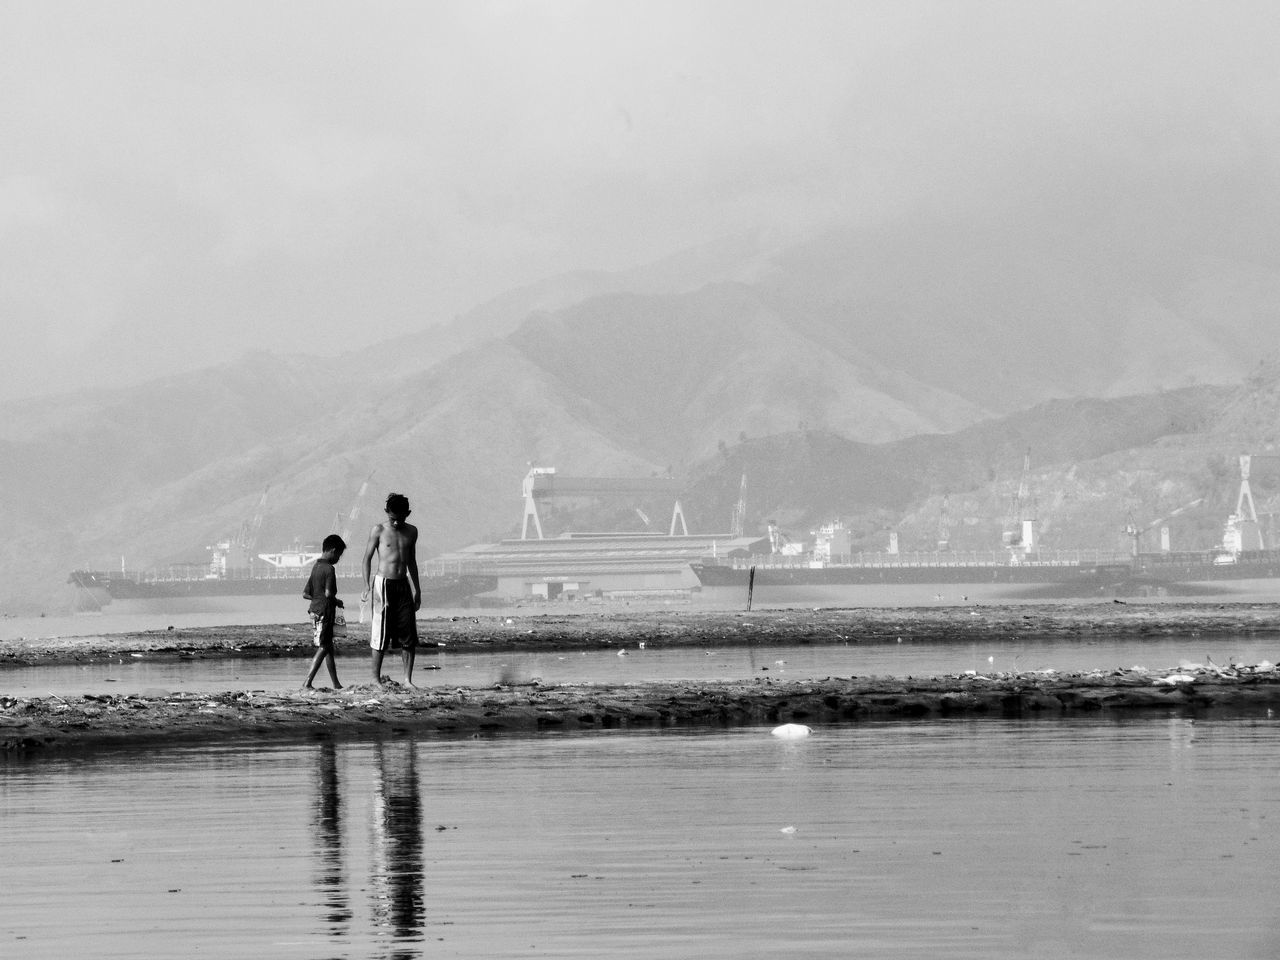 Live For The Story Silhouette Photography Eyeem Philippines Eye4thestreets Capture The Moment The Street Street Photography Streetphotography Street People Bnw_collection Black And White Photography Bnw_captures Monochrome